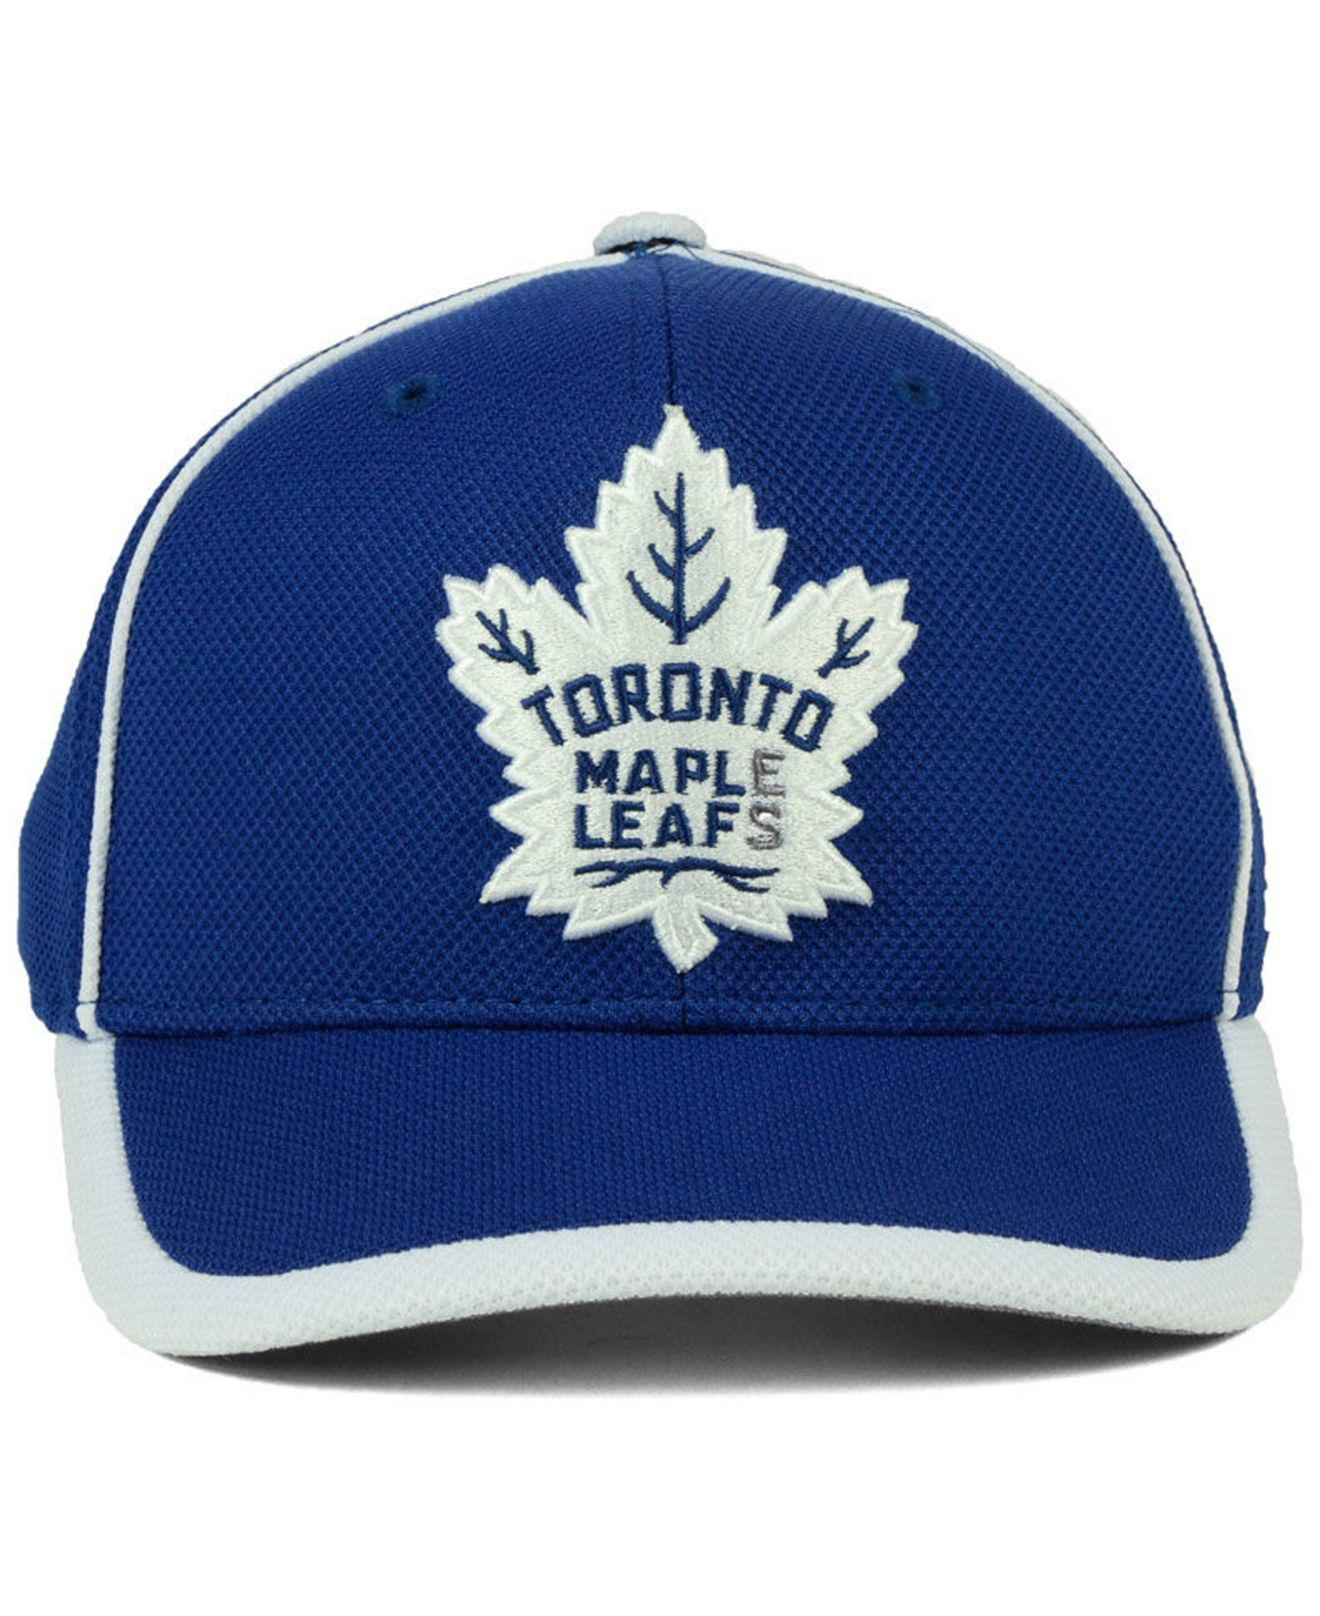 23773cd656a Lyst - Adidas Toronto Maple Leafs Clipper Adjustable Cap in Blue for Men